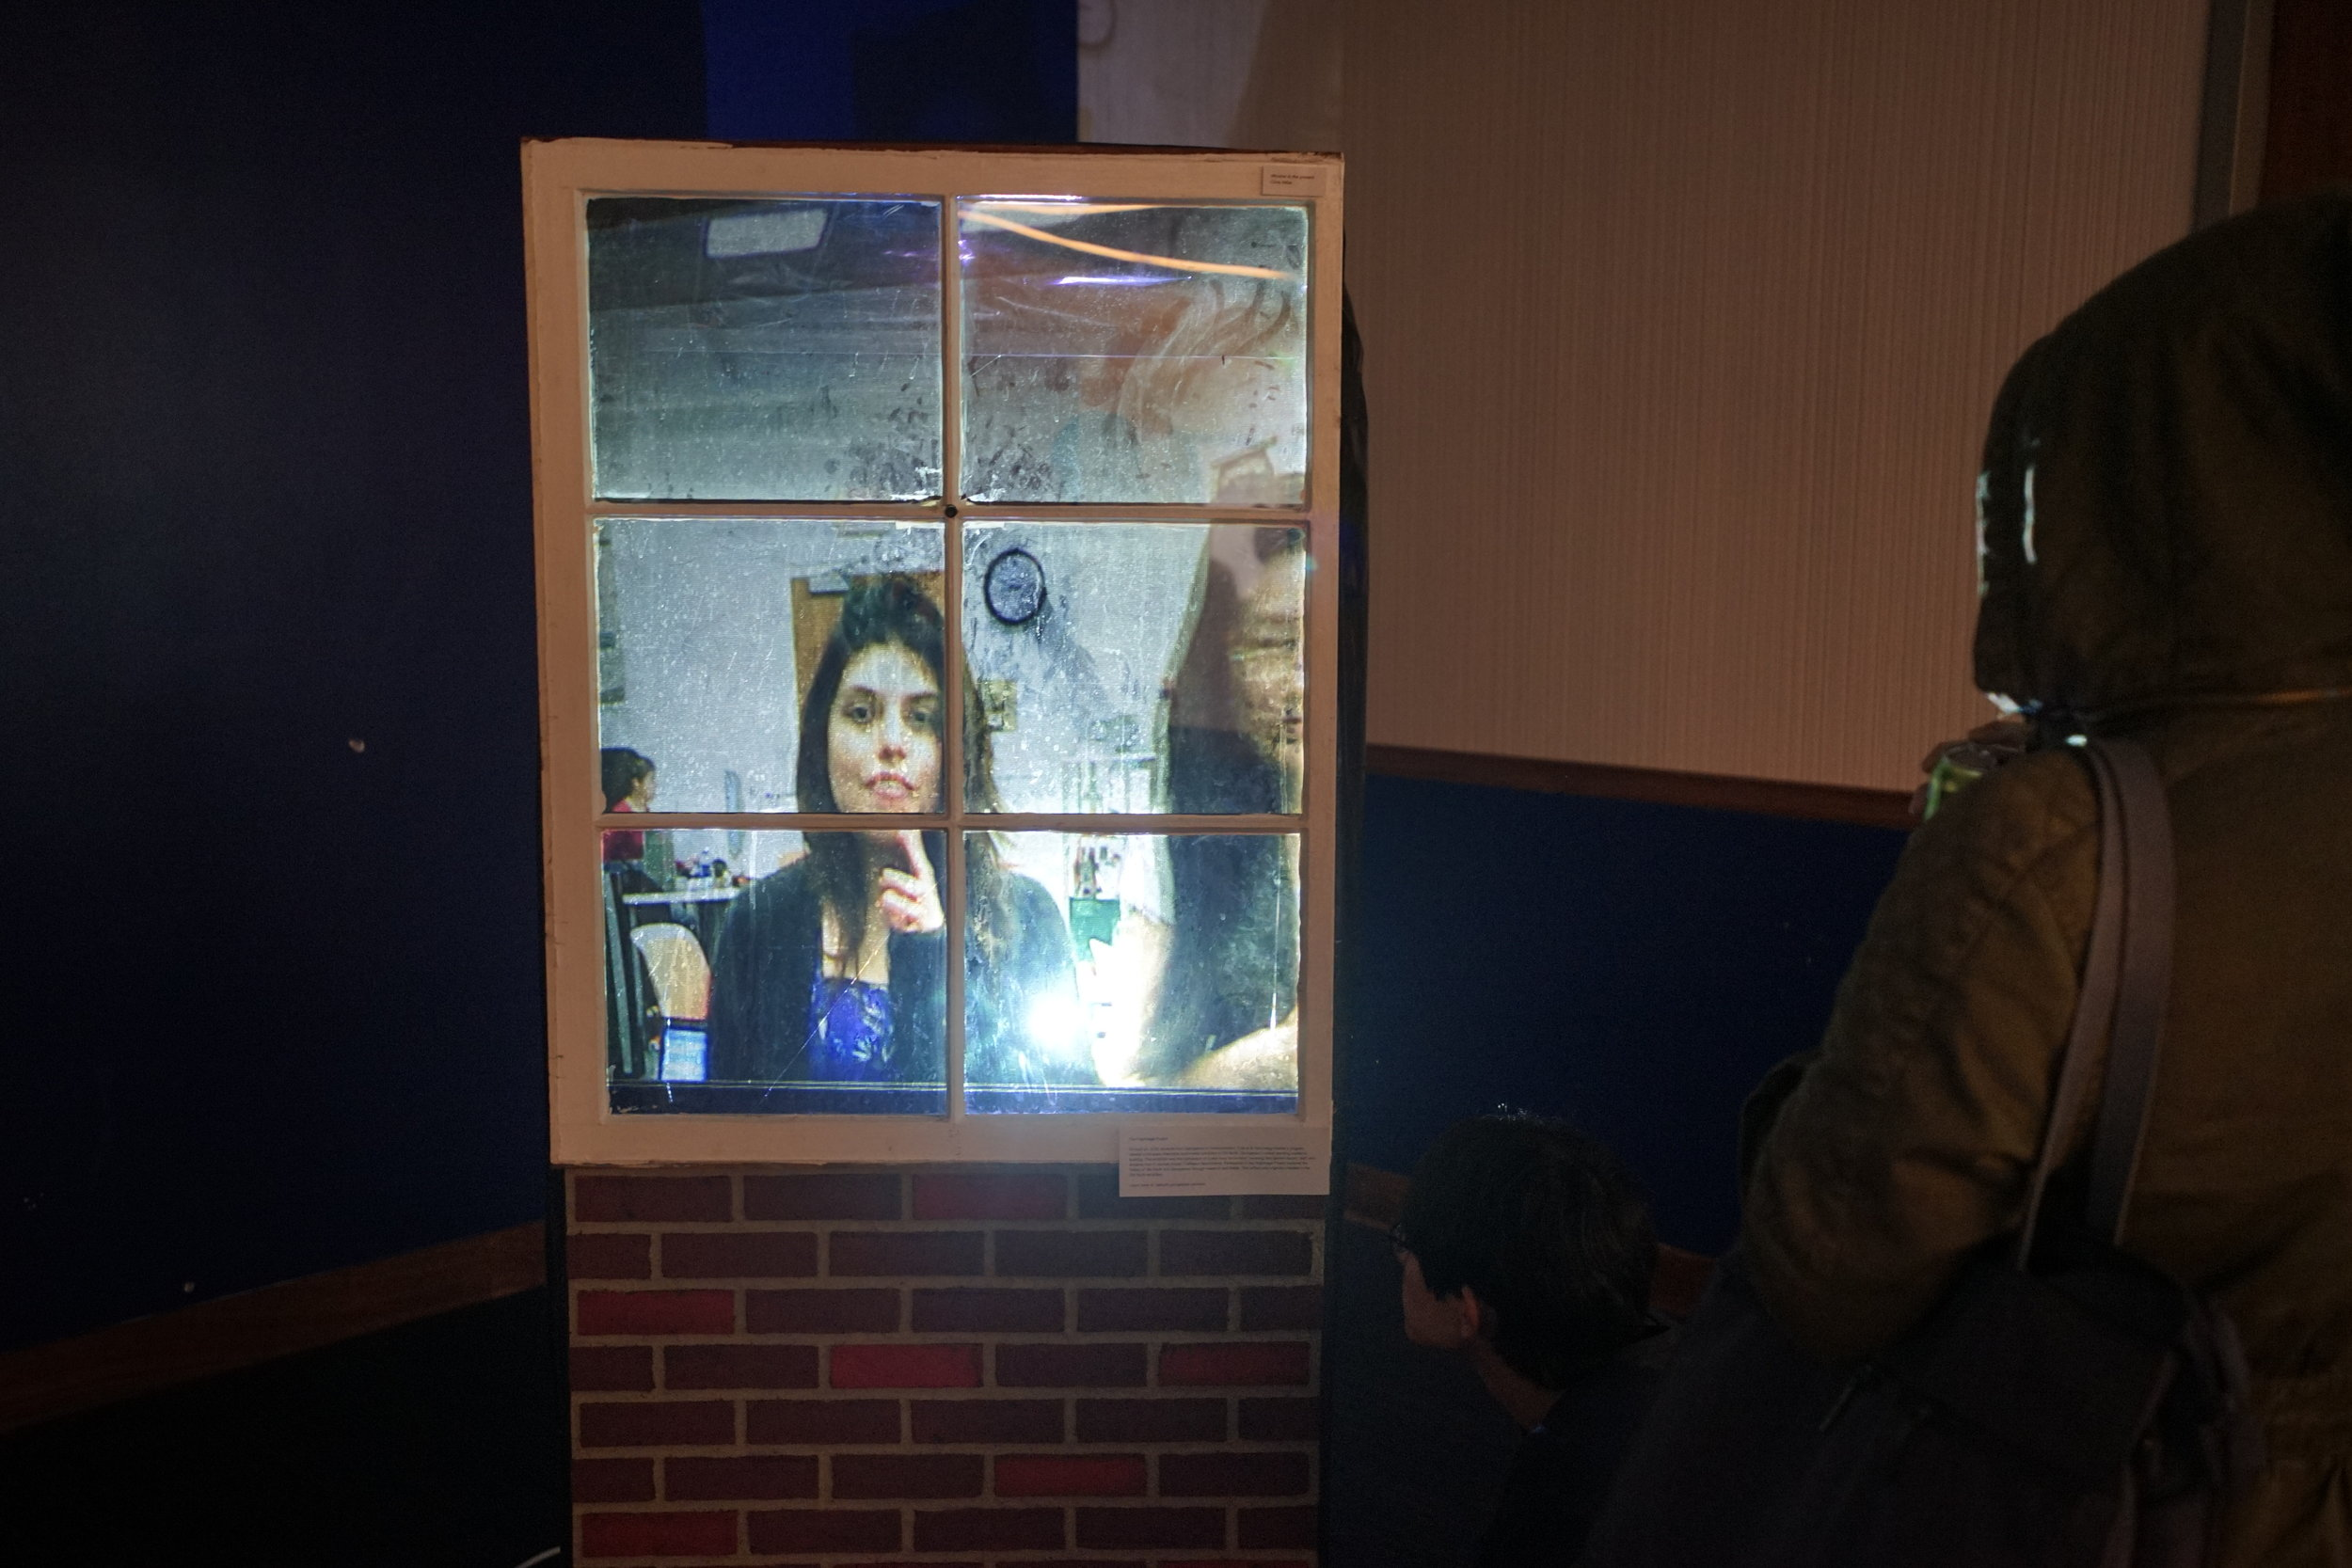 CHRIS MILLER - WINDOW TO THE PRESENT   Interactive installation.      Window to the Present  uses raspberry pi technology to record videos of everyone who looks into the prop window. However, when new individuals come up to the window, there is a time lag and participants will see the reflections of those before them and not themselves.